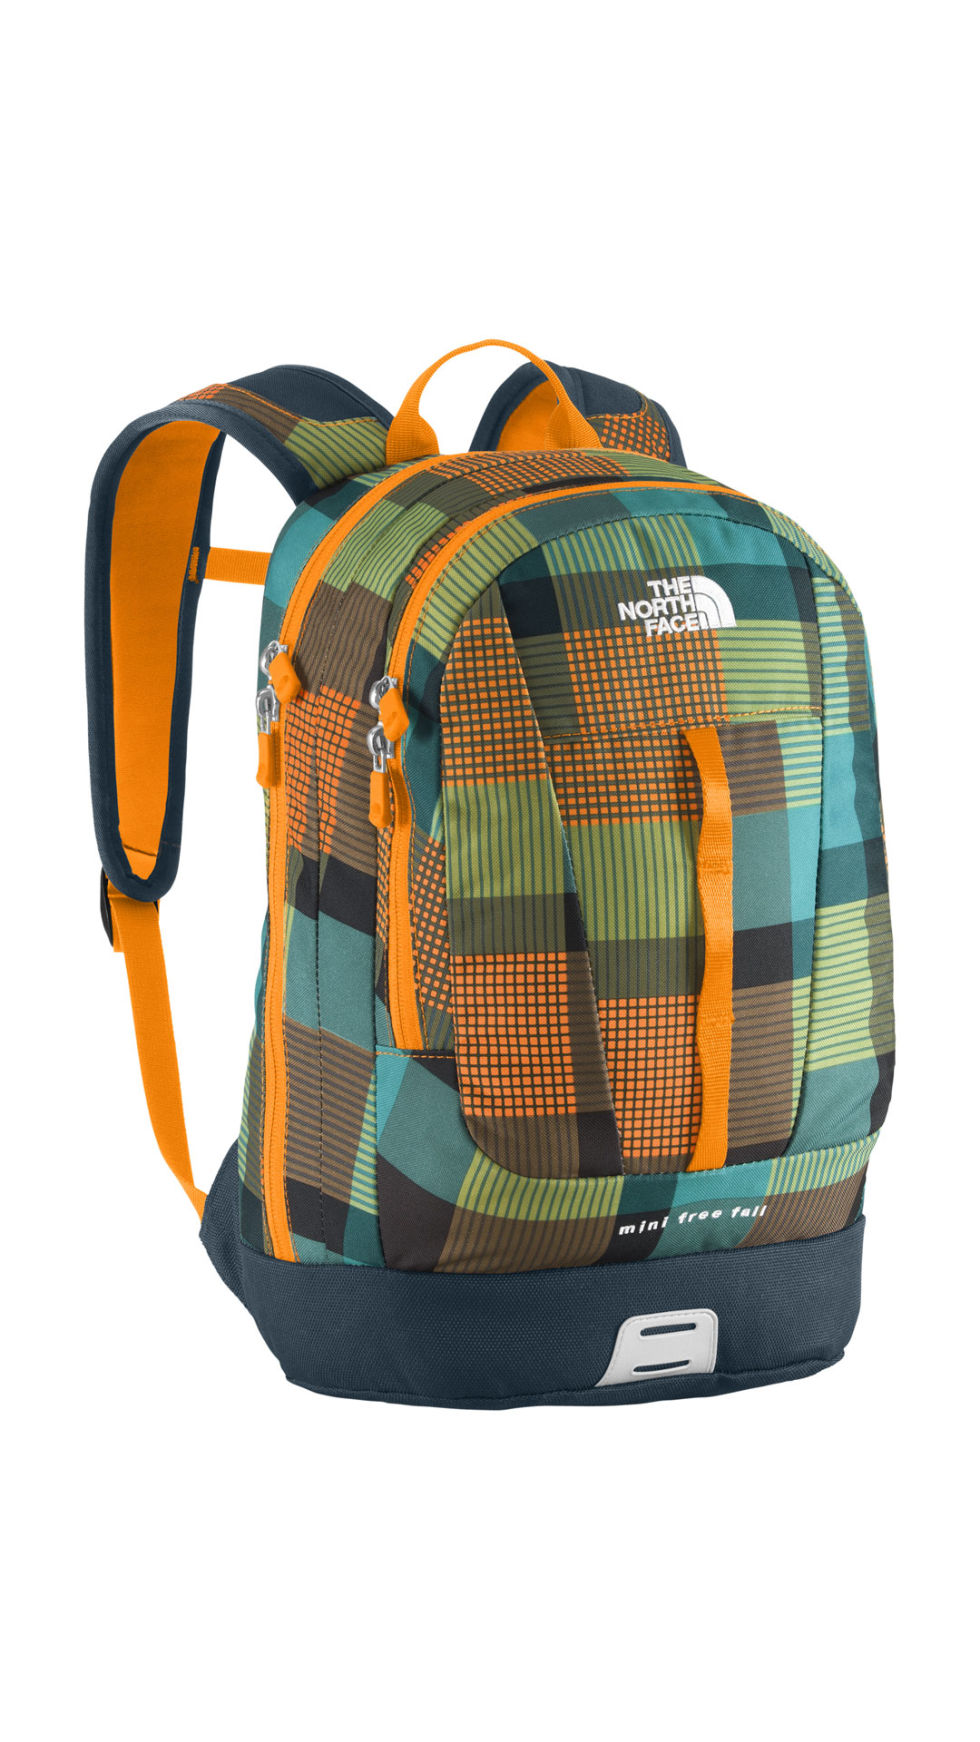 Best School Backpacks k2rMfcnH